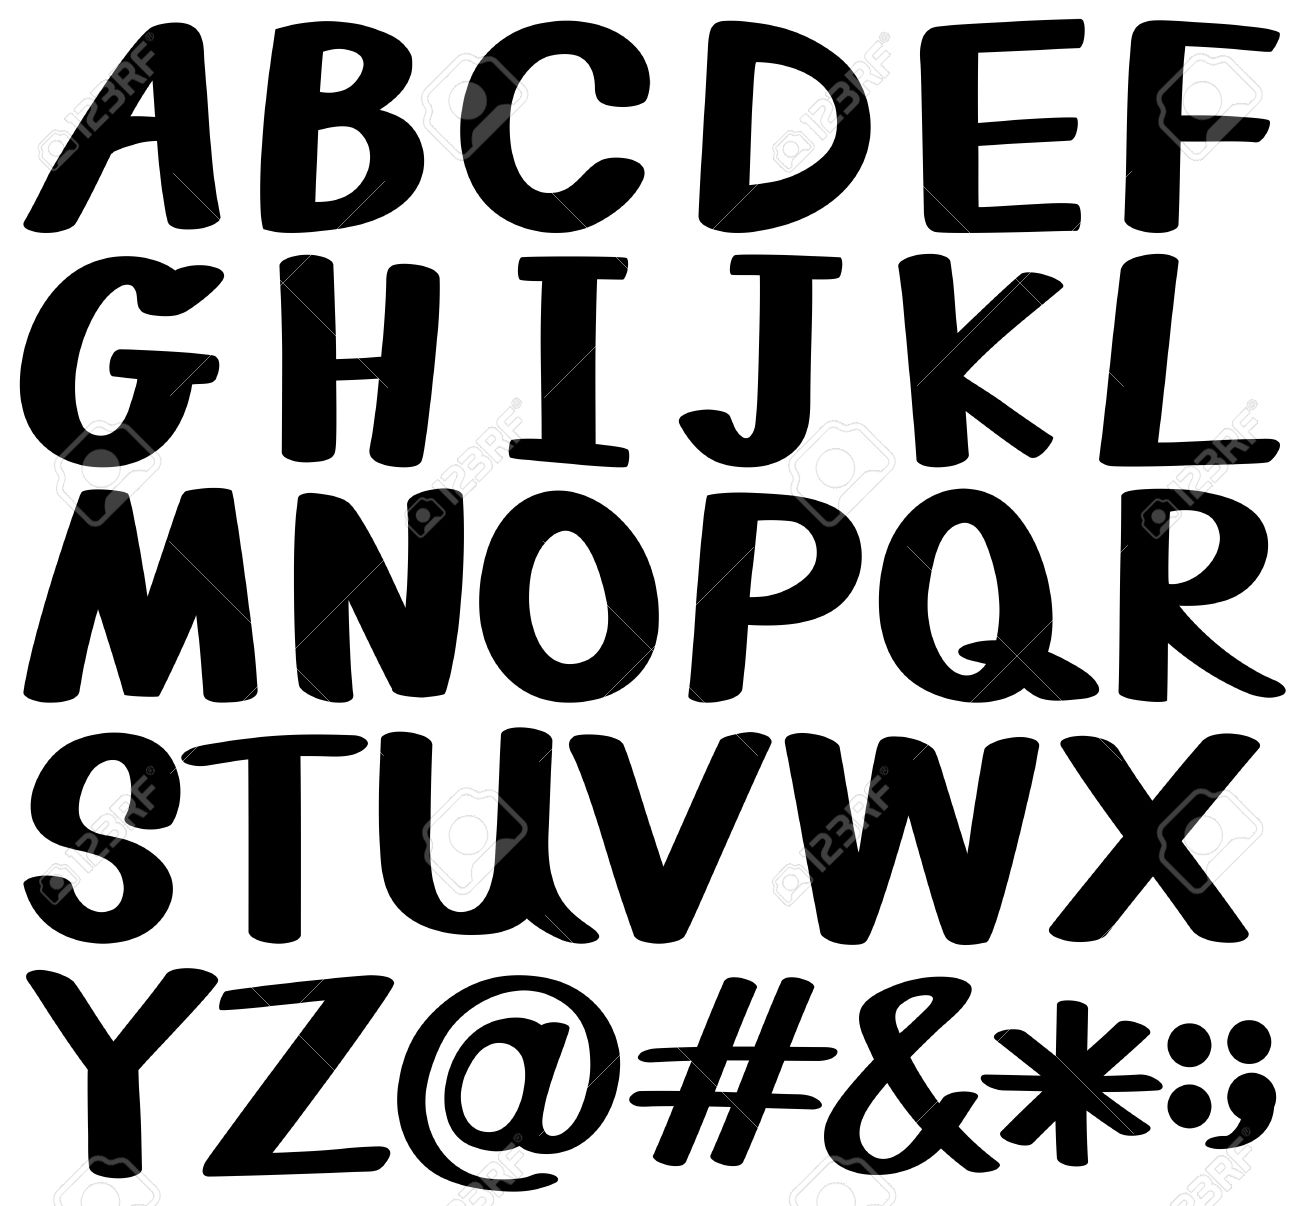 Alphabet Pictures For Each Letter Black And White.Big Letters Of The Alphabet In Black Color On A White Background